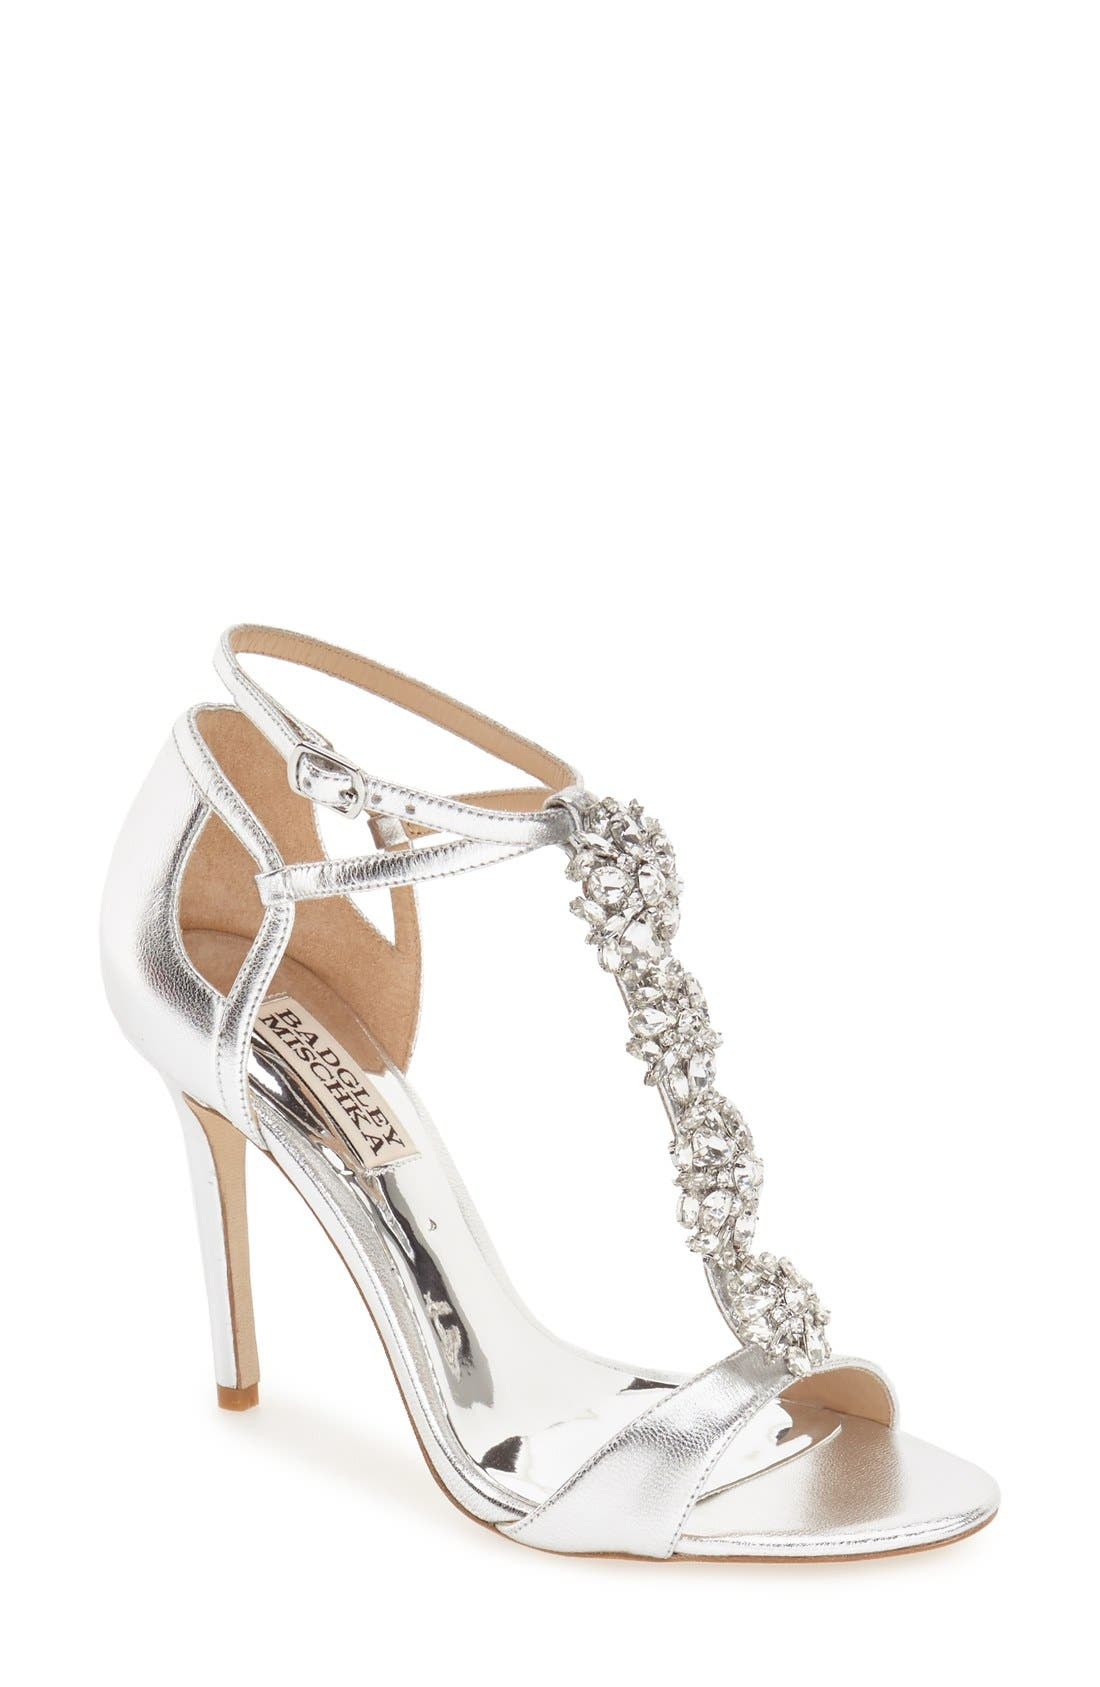 BADGLEY MISCHKA COLLECTION,                             Badgley Mischka 'Leigh' Embellished Evening Sandal,                             Main thumbnail 1, color,                             046